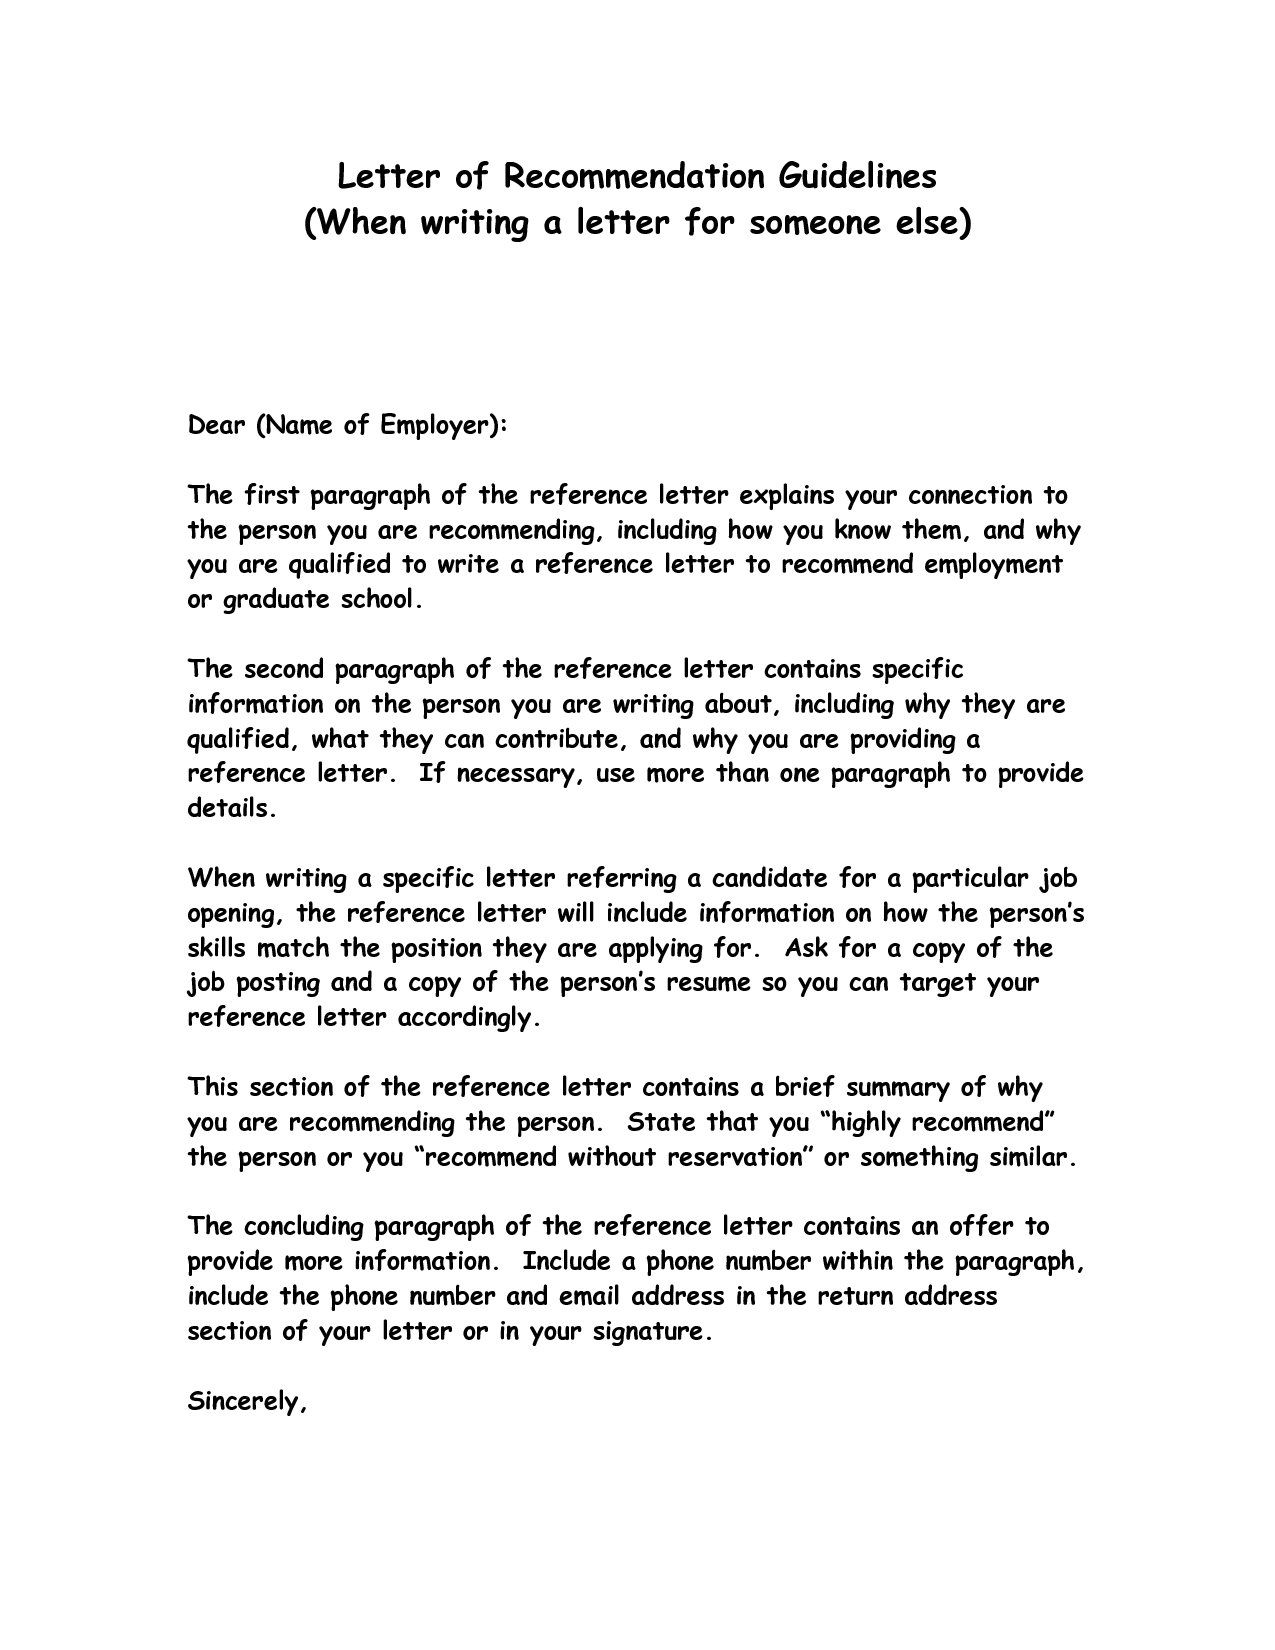 How to write a reference letter letter letter example how to write a reference letter letter spiritdancerdesigns Choice Image